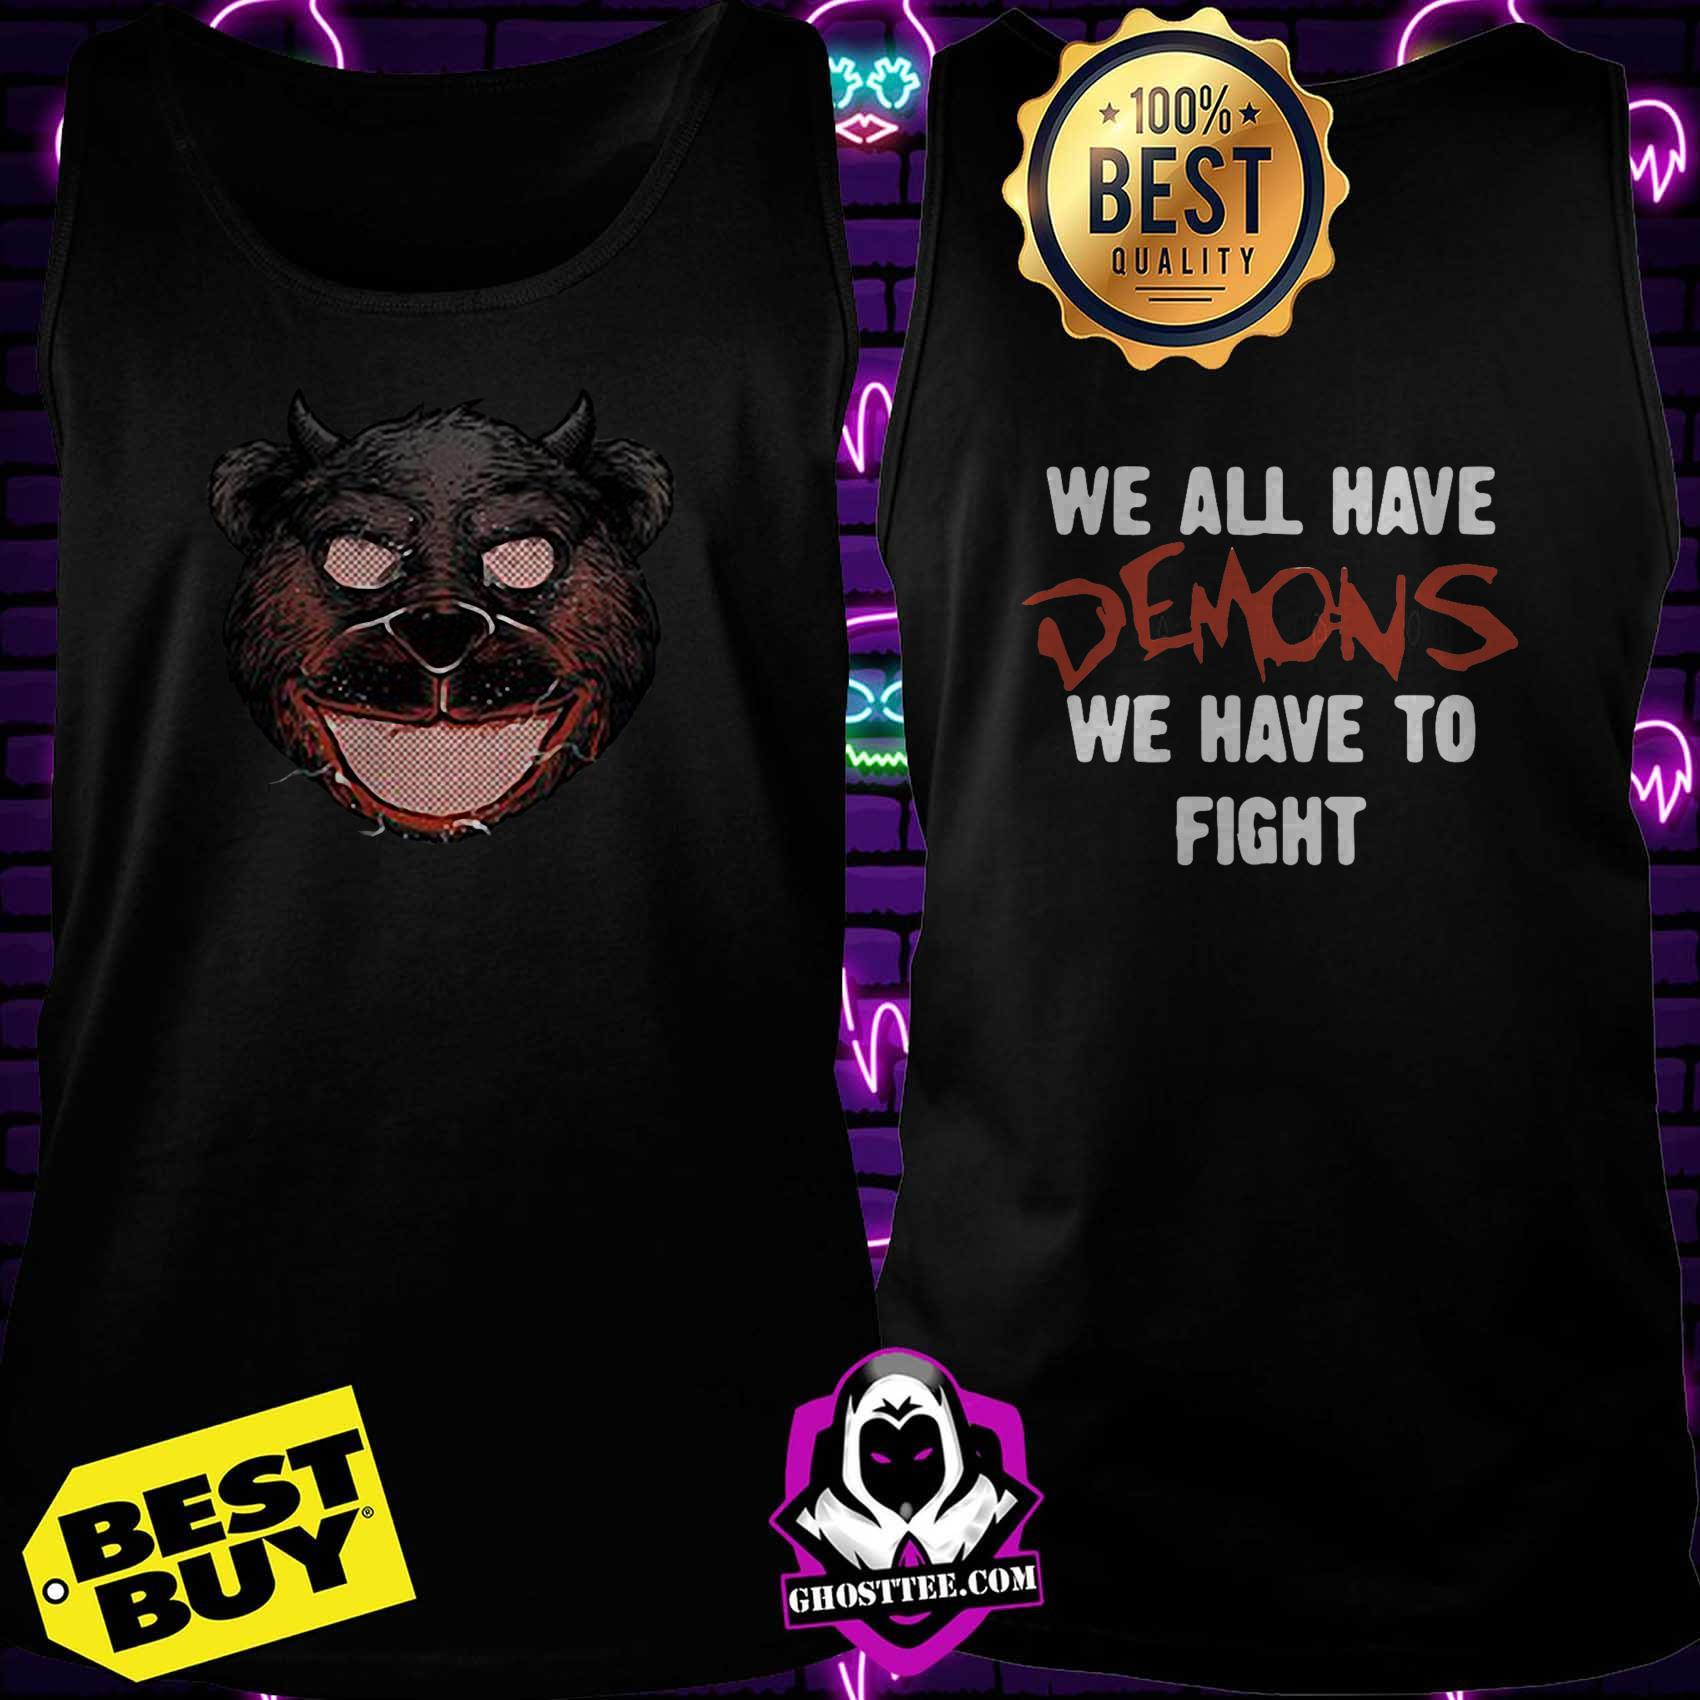 bear grillz we all have demons we have to fight tank top - Bear Grillz we all have Demons we have to fight shirt